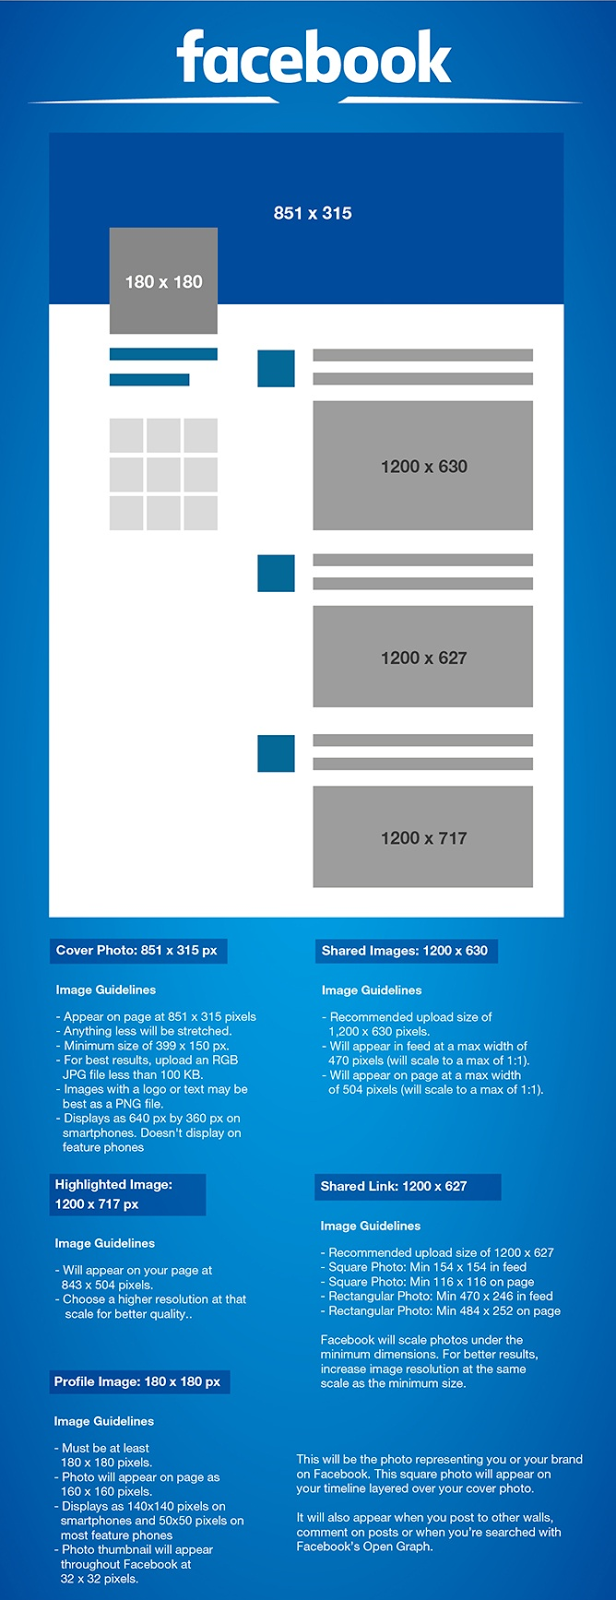 The Photo and Image cover Sizes on Facebook